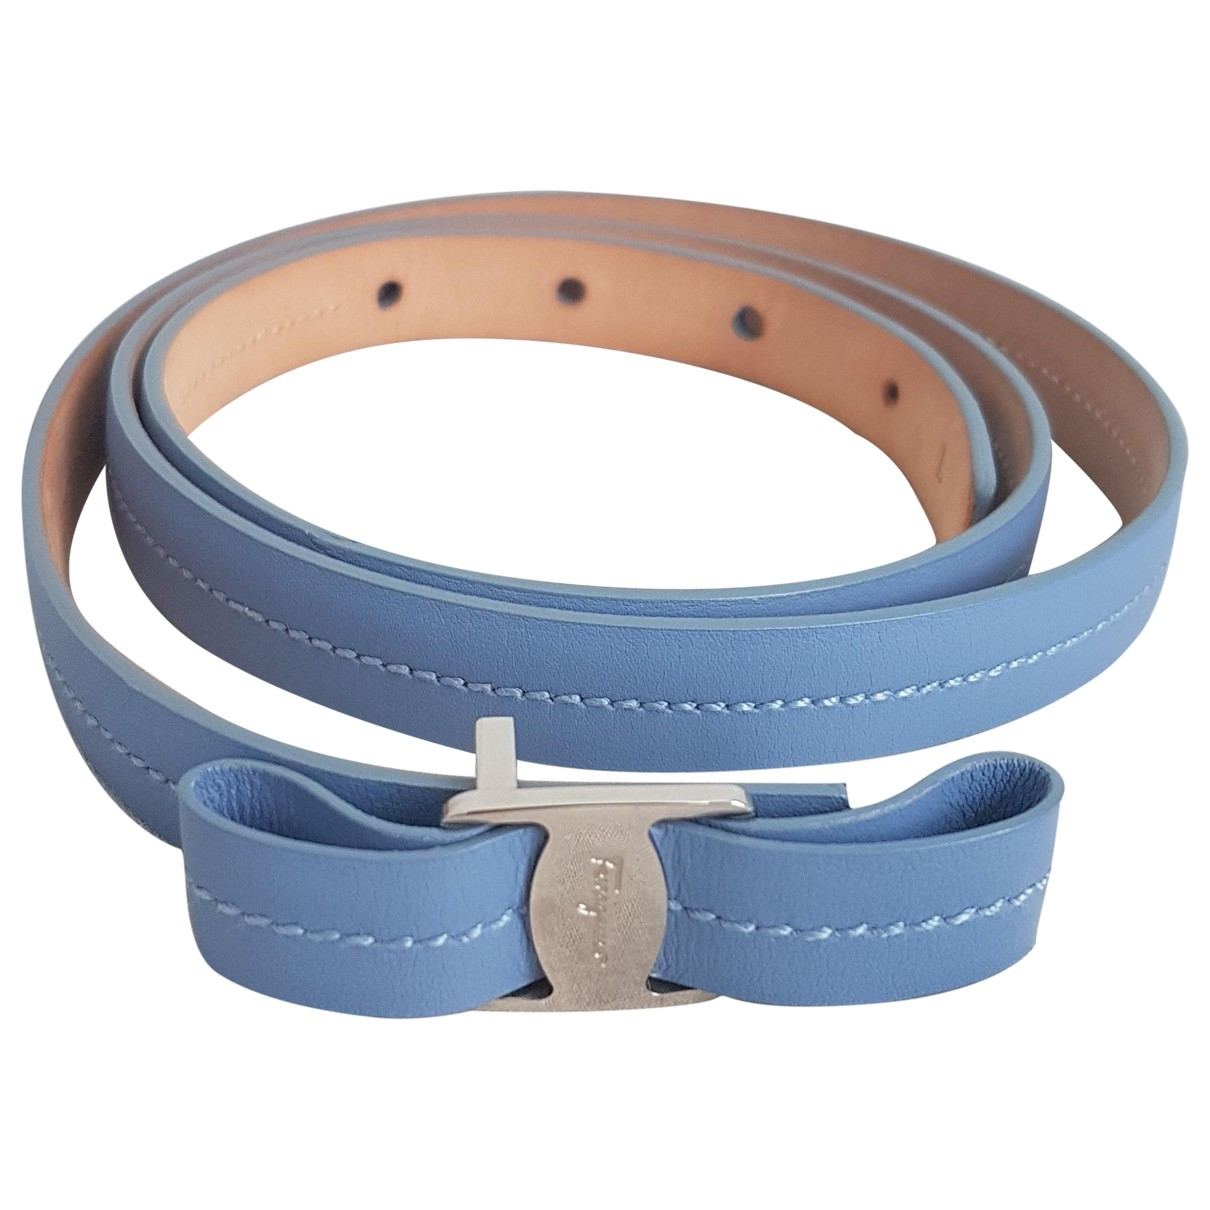 Salvatore Ferragamo \N Blue Leather belt for Women L International